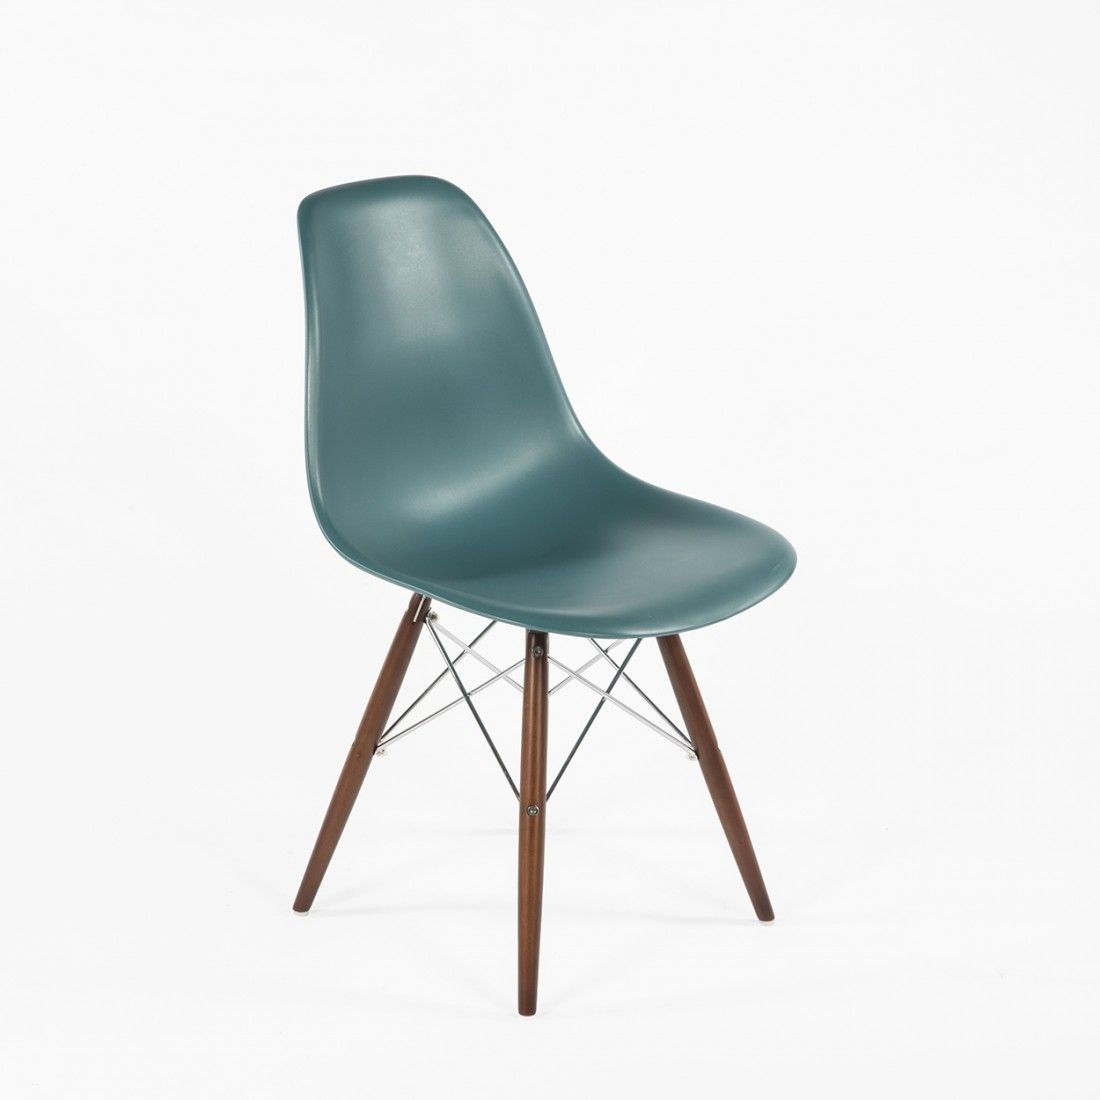 DSW Molded Plastic Dining Chair with Walnut Legs Navy Green Home